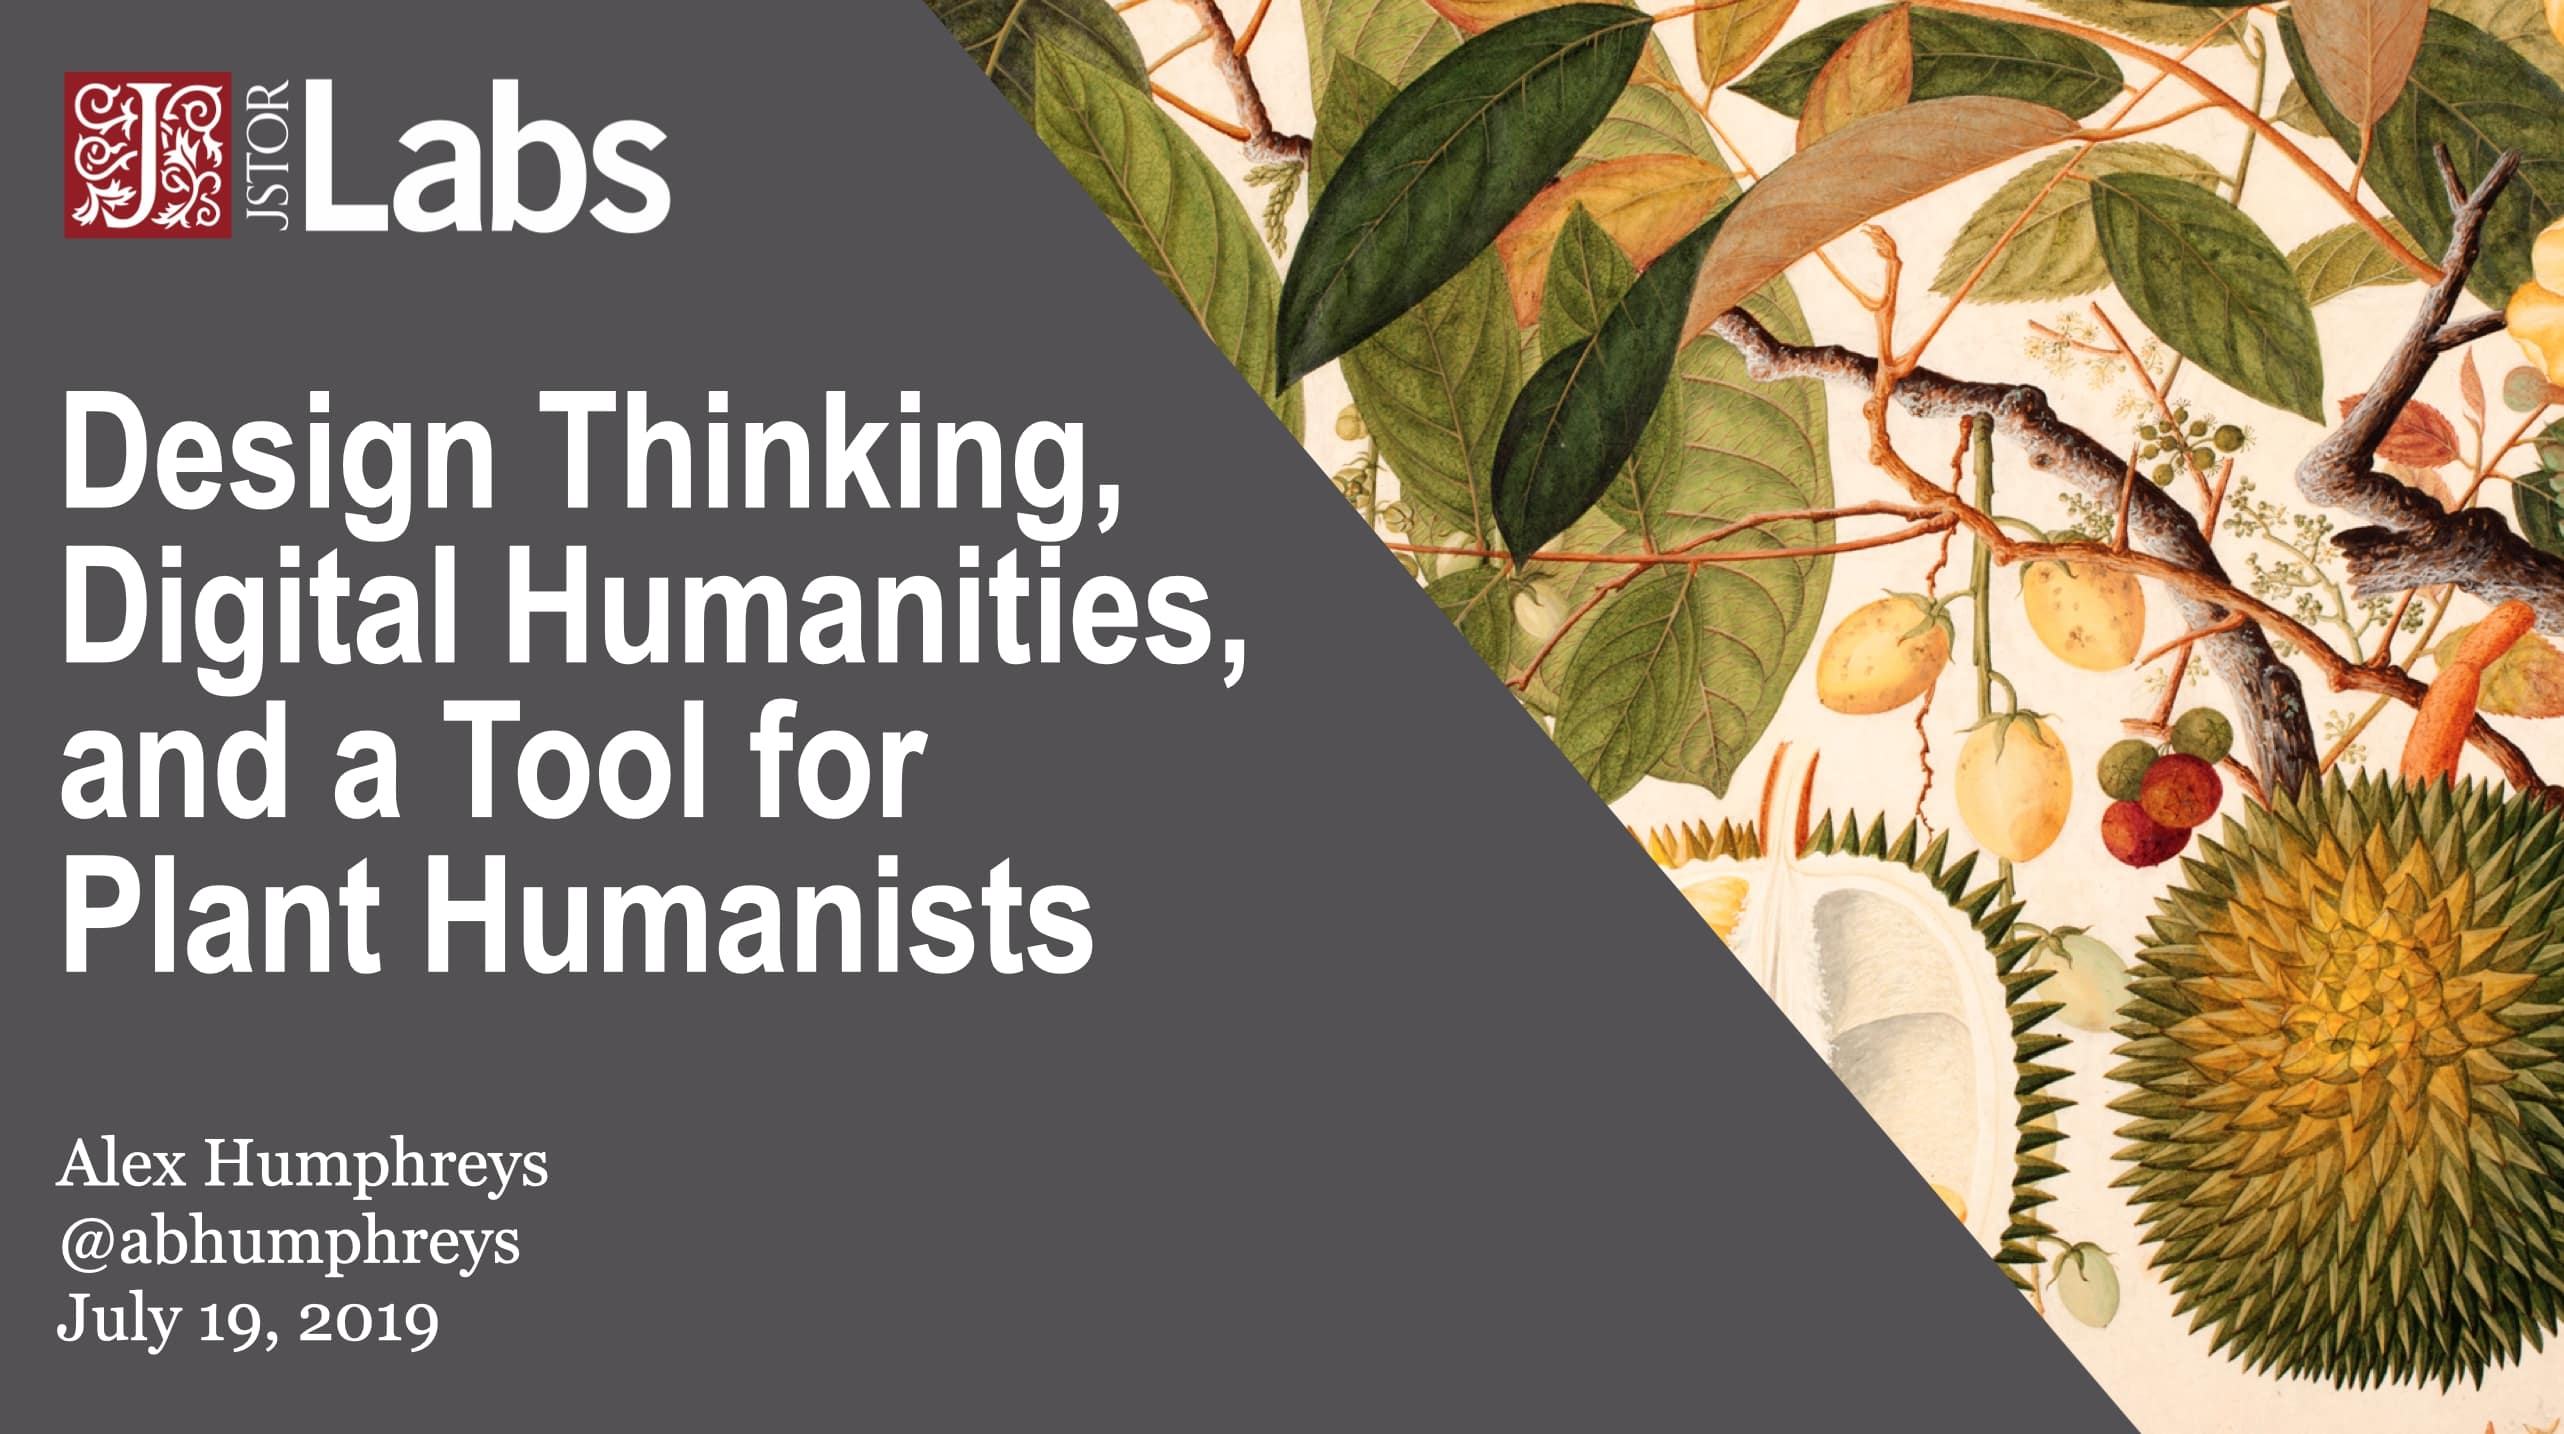 Design Thinking, Digital Humanities and a Tool for Plant Humanists